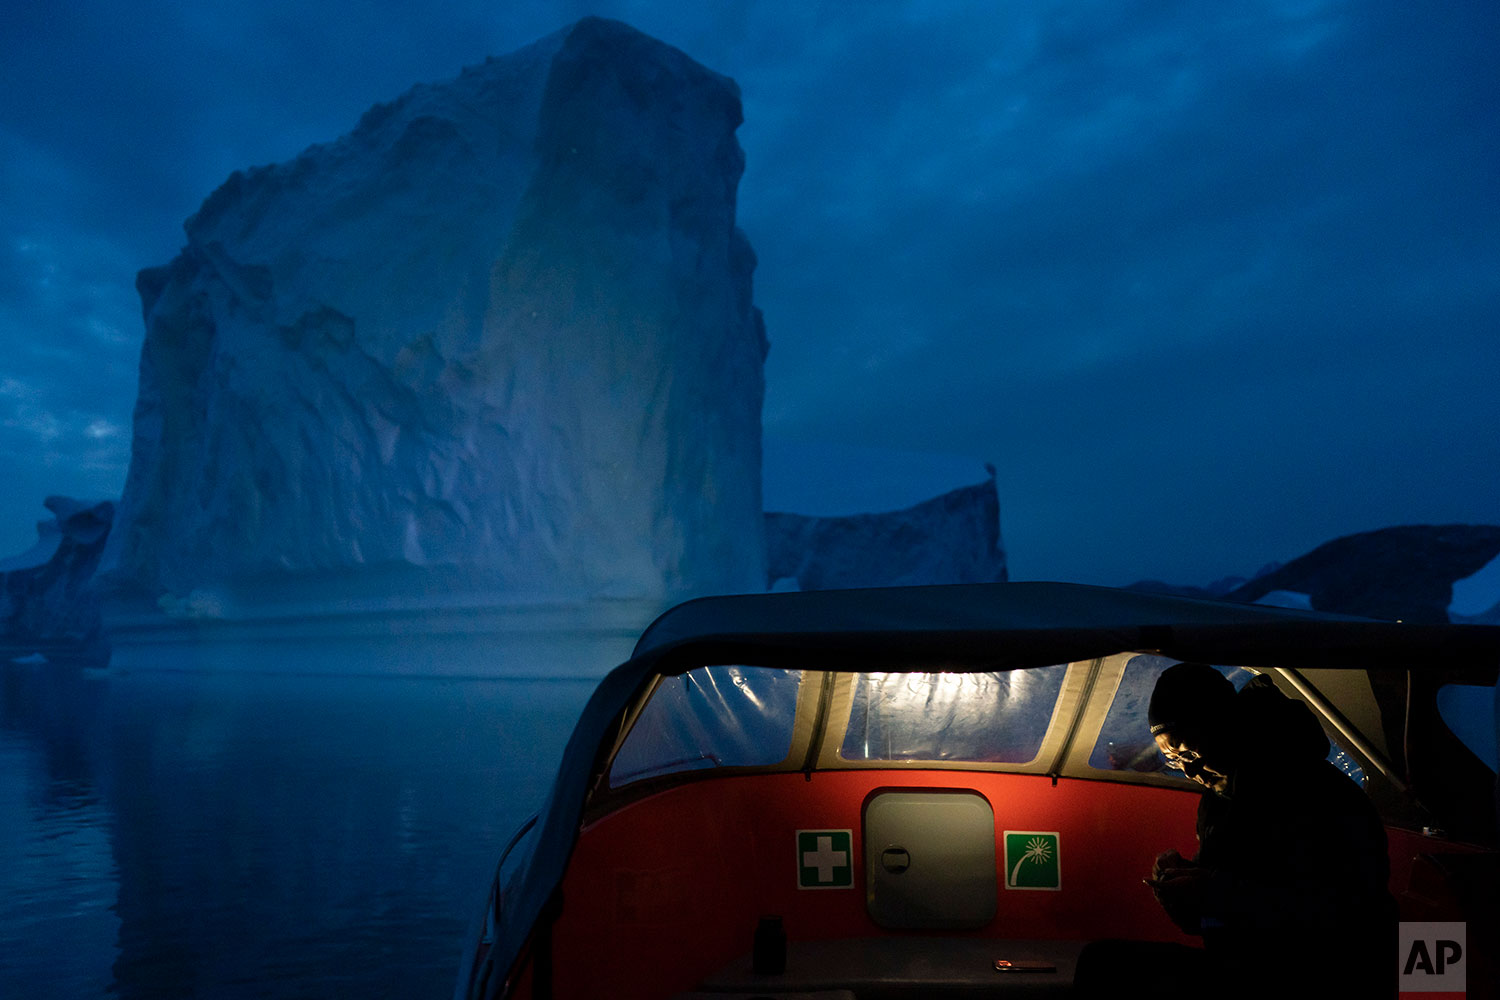 In this Aug. 15, 2019 photo, a boat navigates at night next to a large iceberg in eastern Greenland. (AP Photo/Felipe Dana)